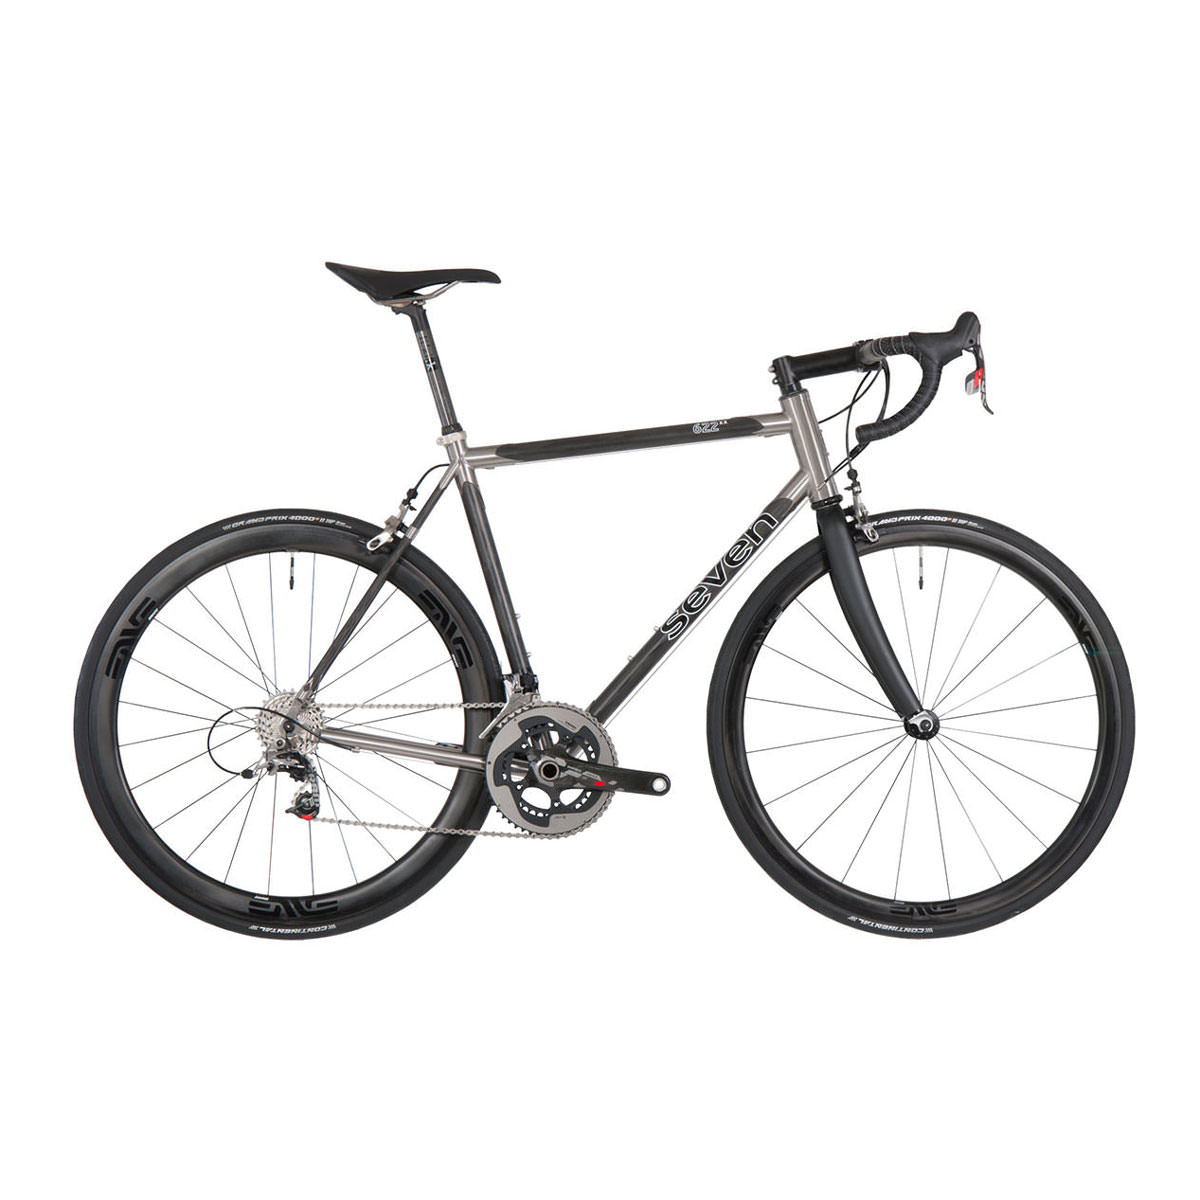 ROAD:CARBON/TITANIUM